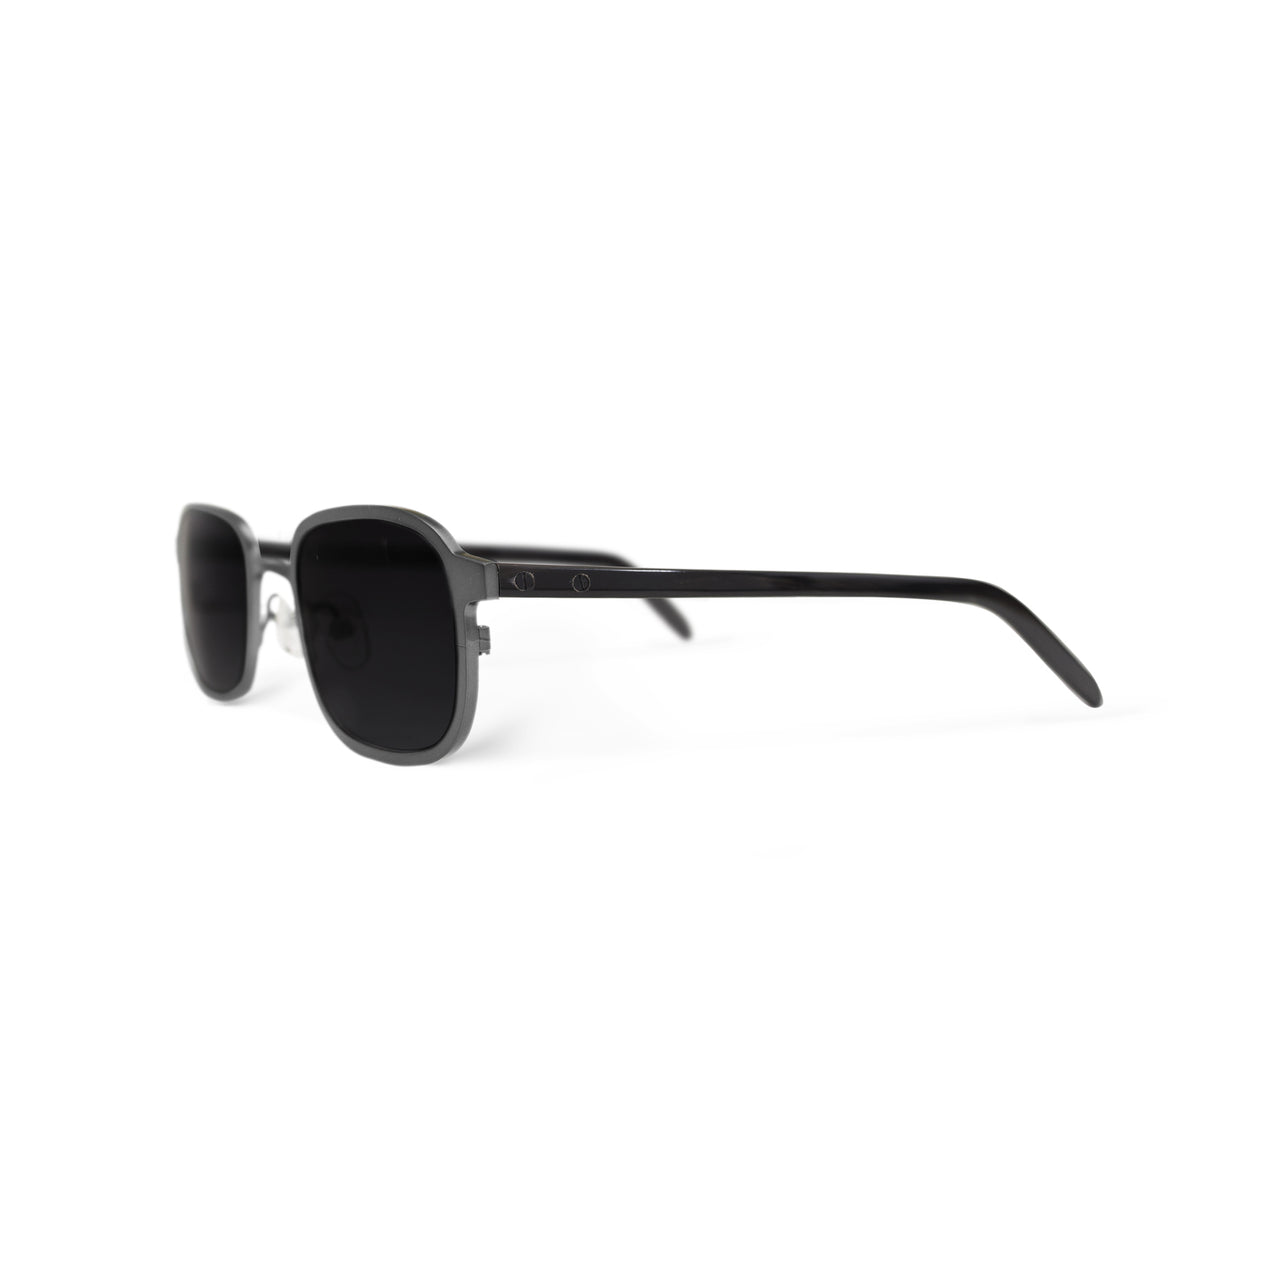 Metal / Horn. Brushed Silver / Dark. Black Lens. - BLYSZAK eyewear eyewear - eyewear, optical, sunglasses